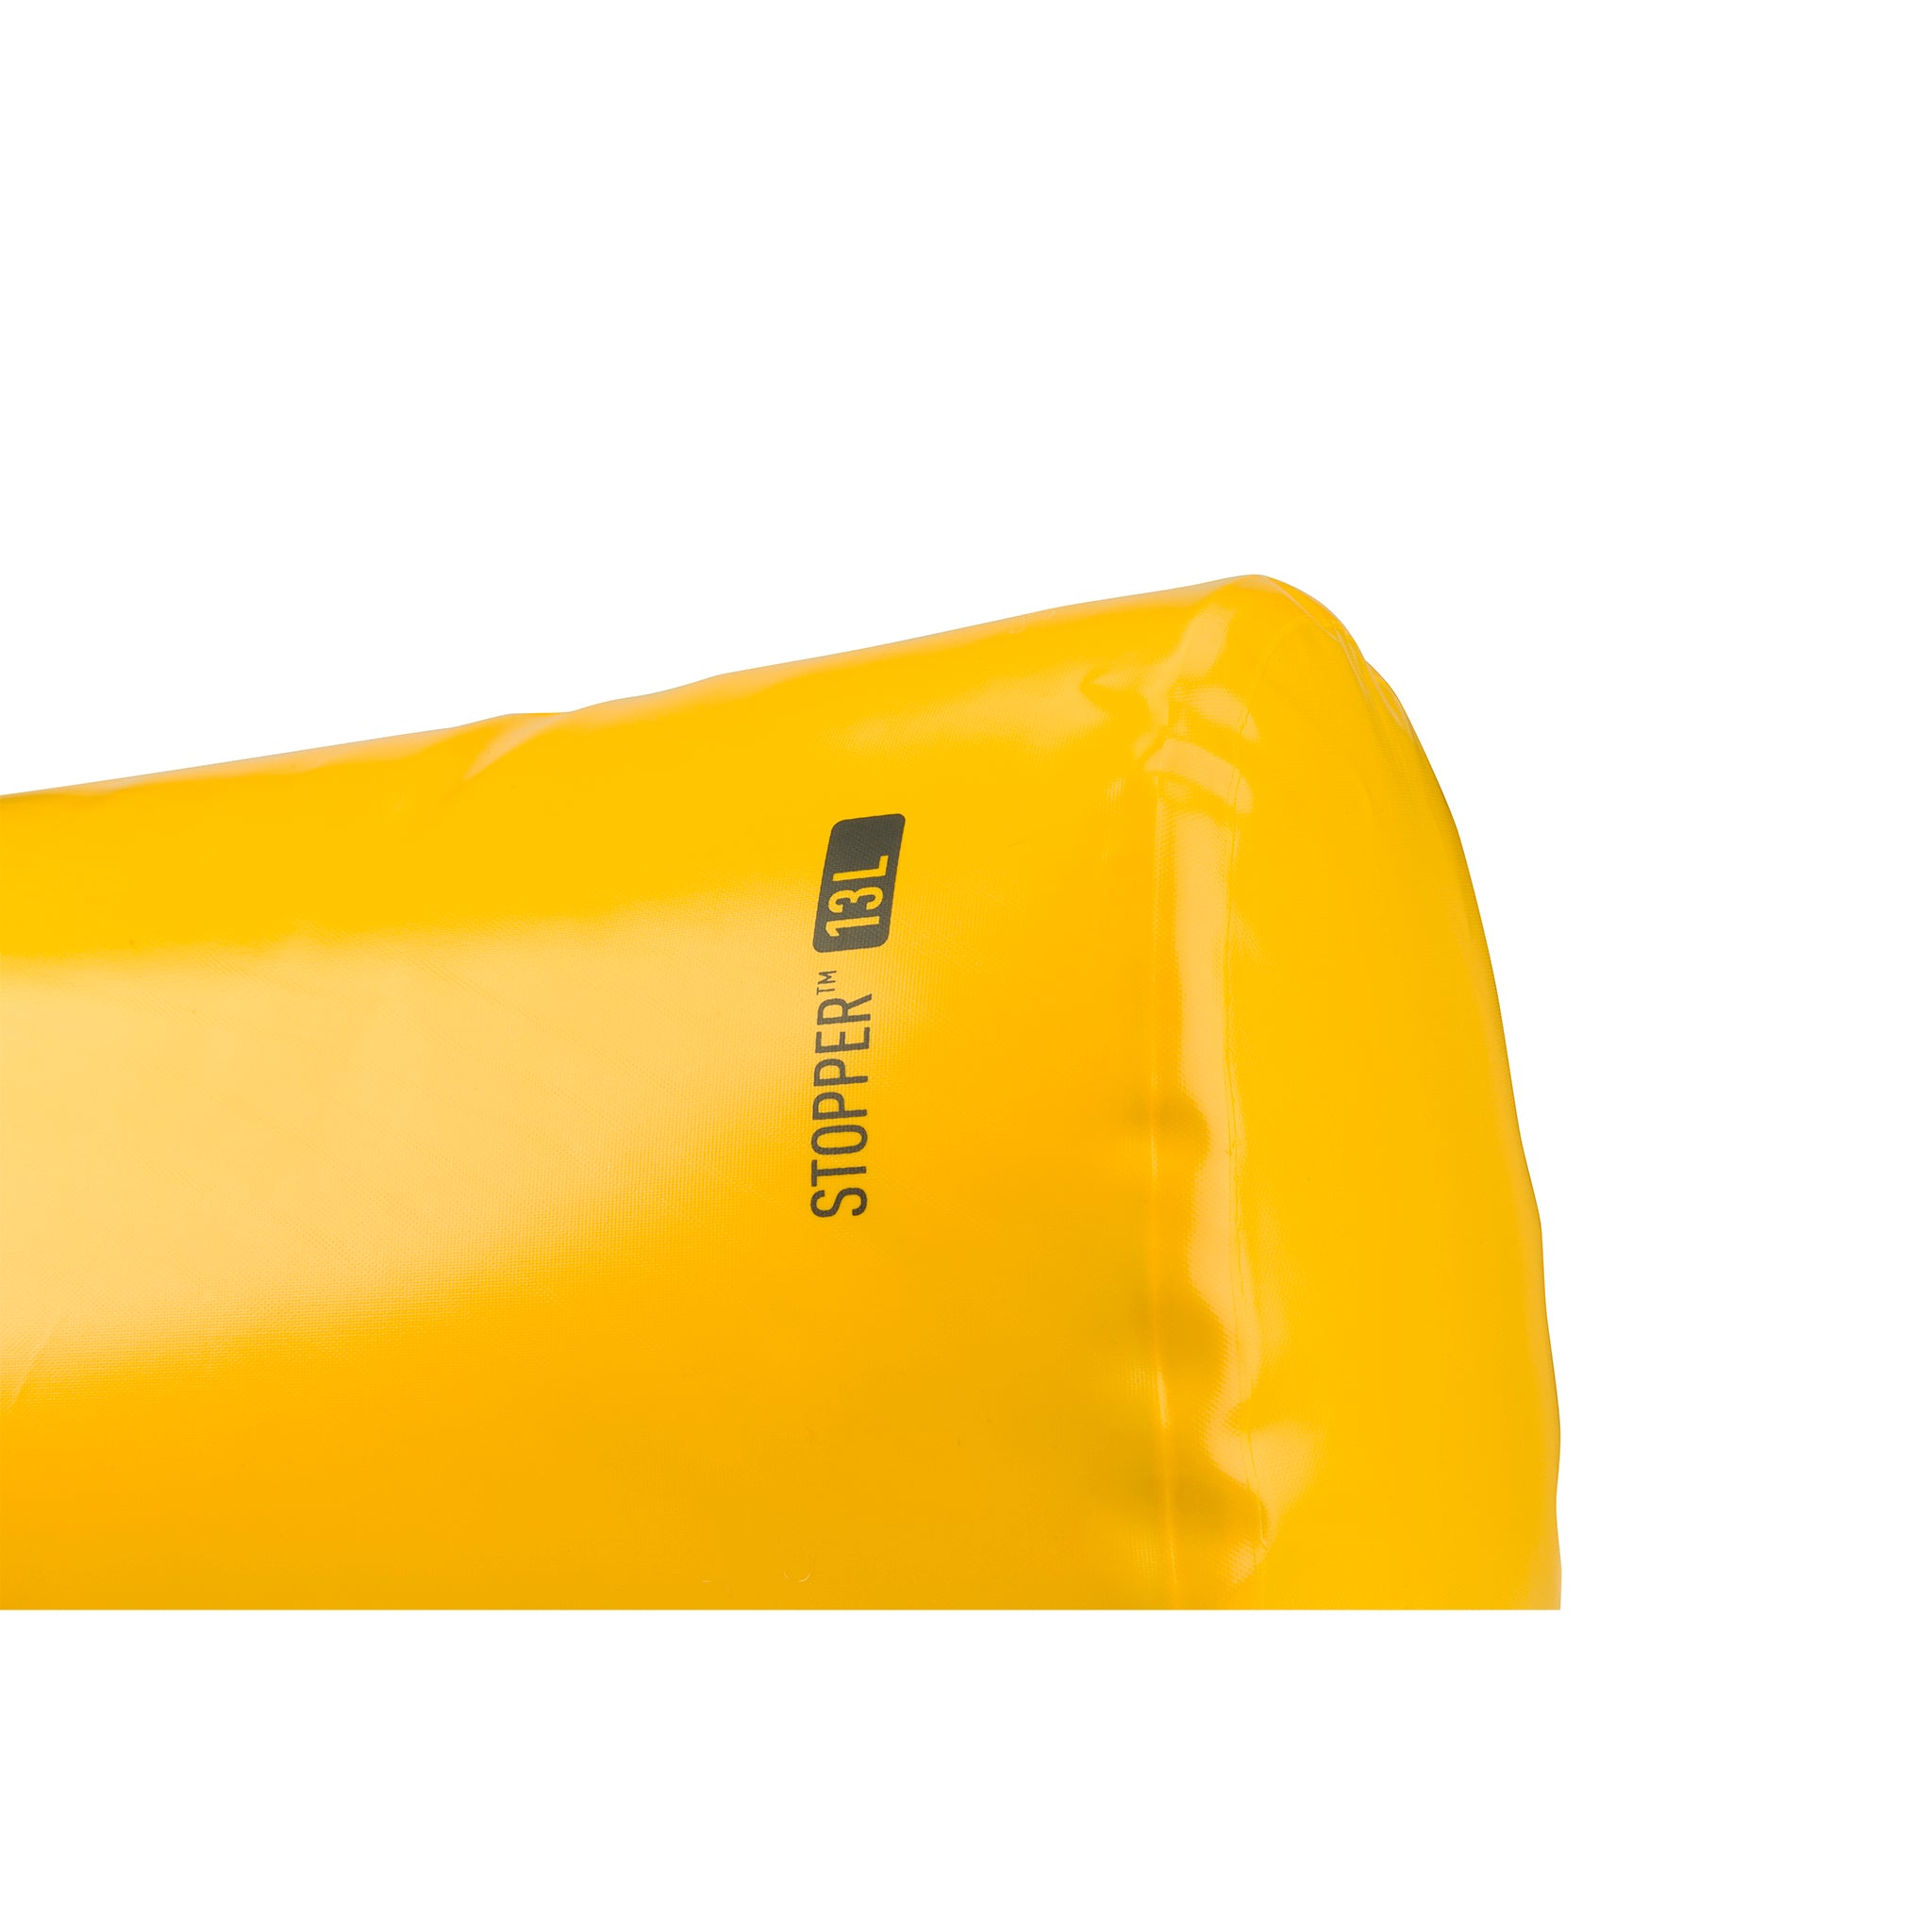 Stopper Waterproof Dry Bag _ seam sealed